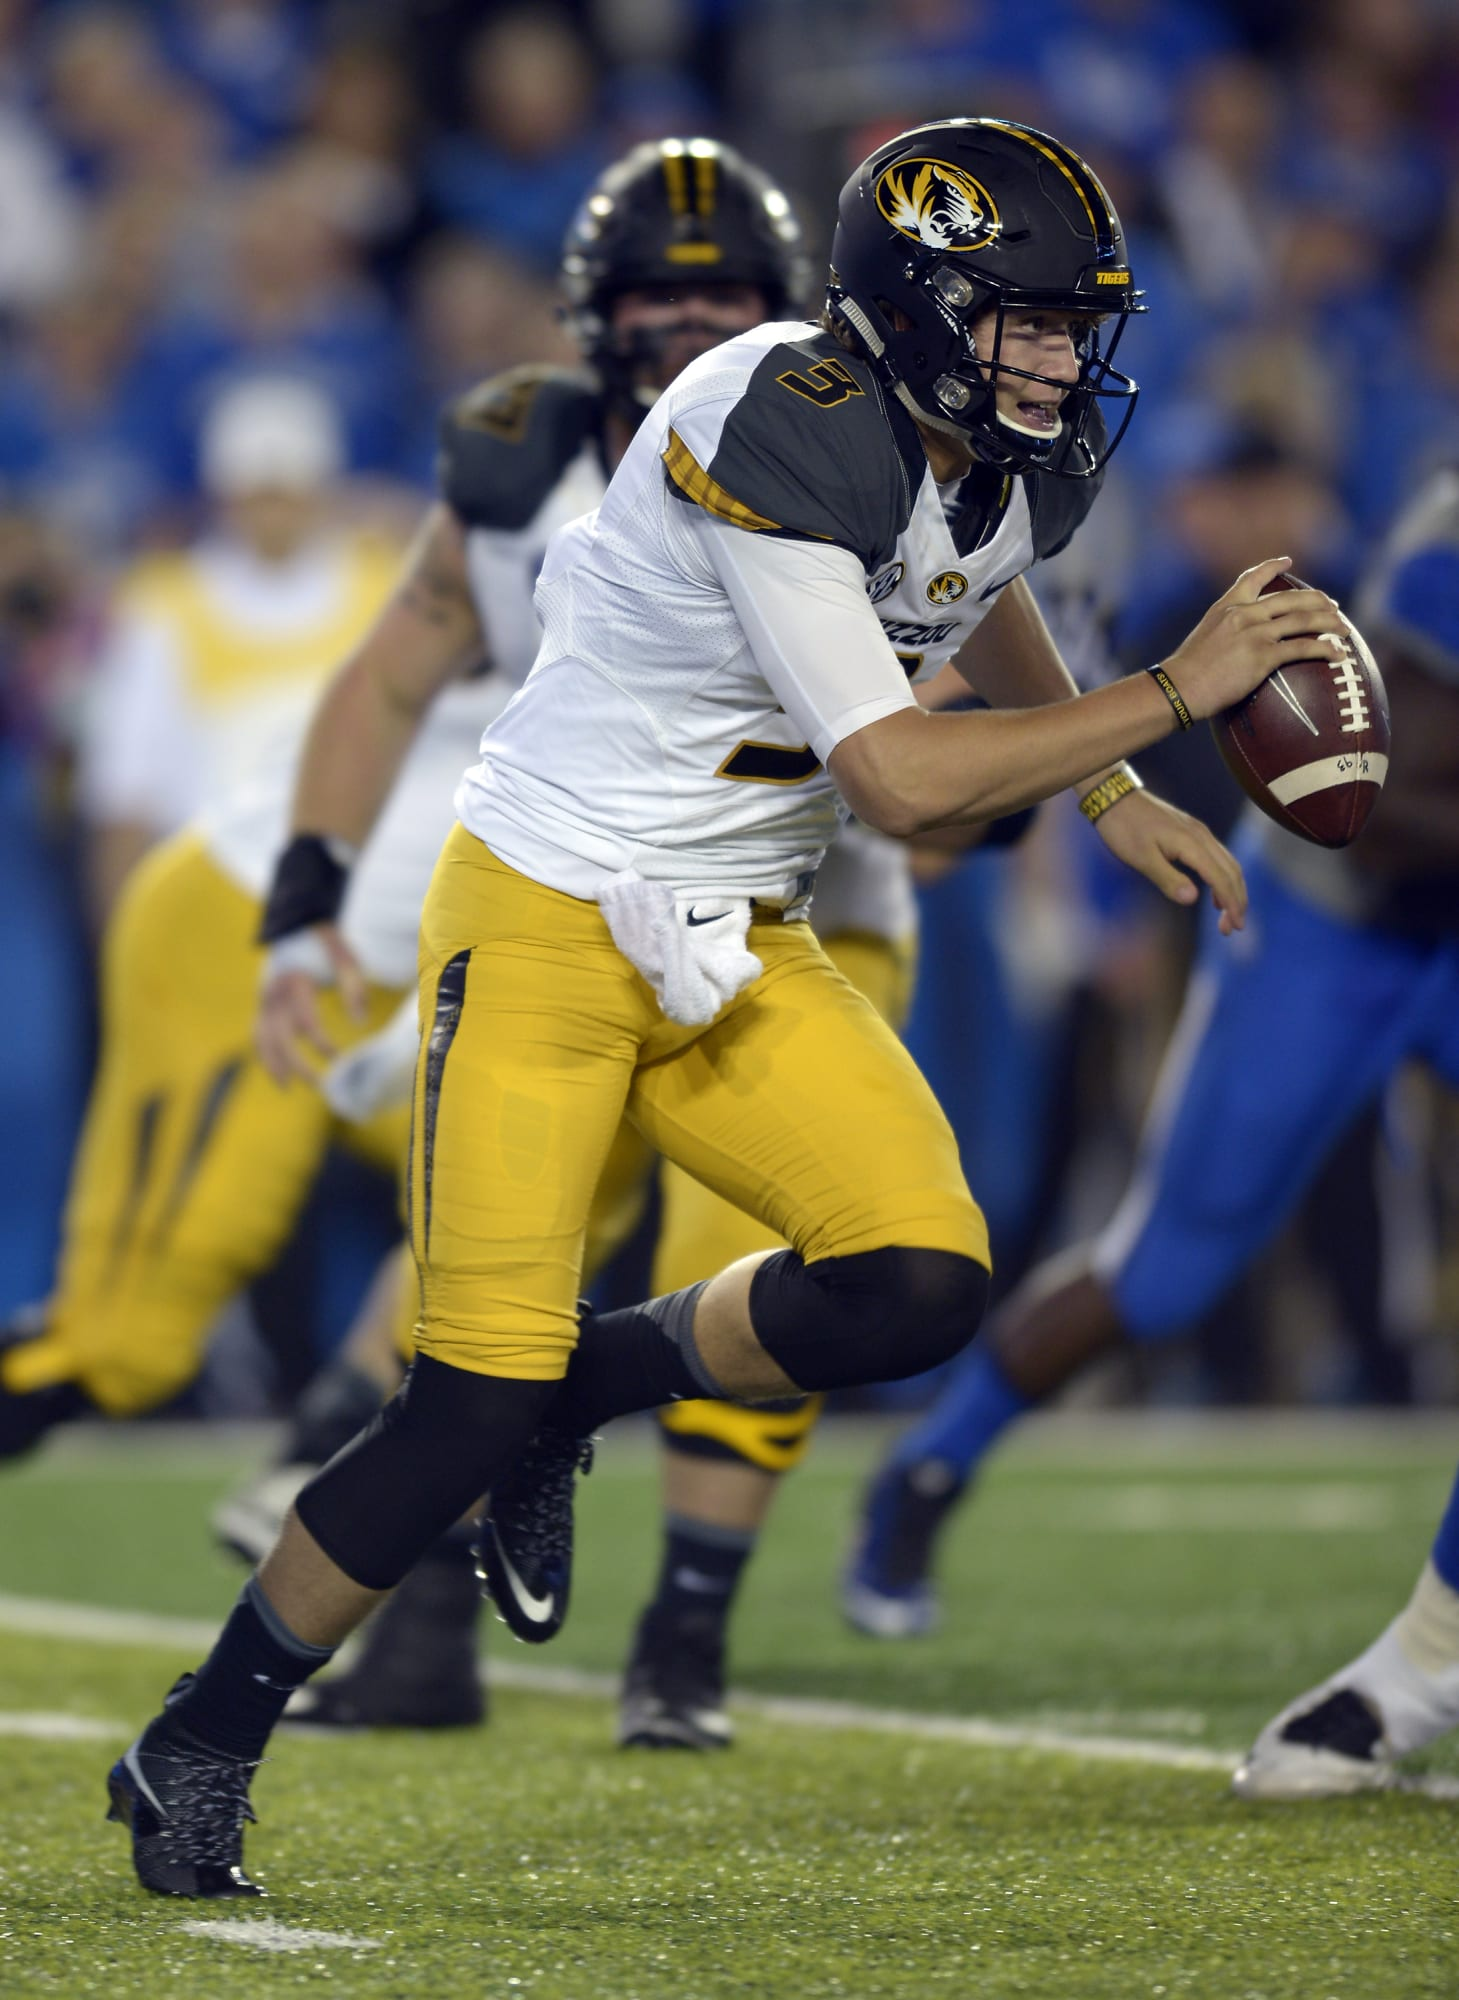 Missouri Football: Tigers scheduled to play Kentucky in ...